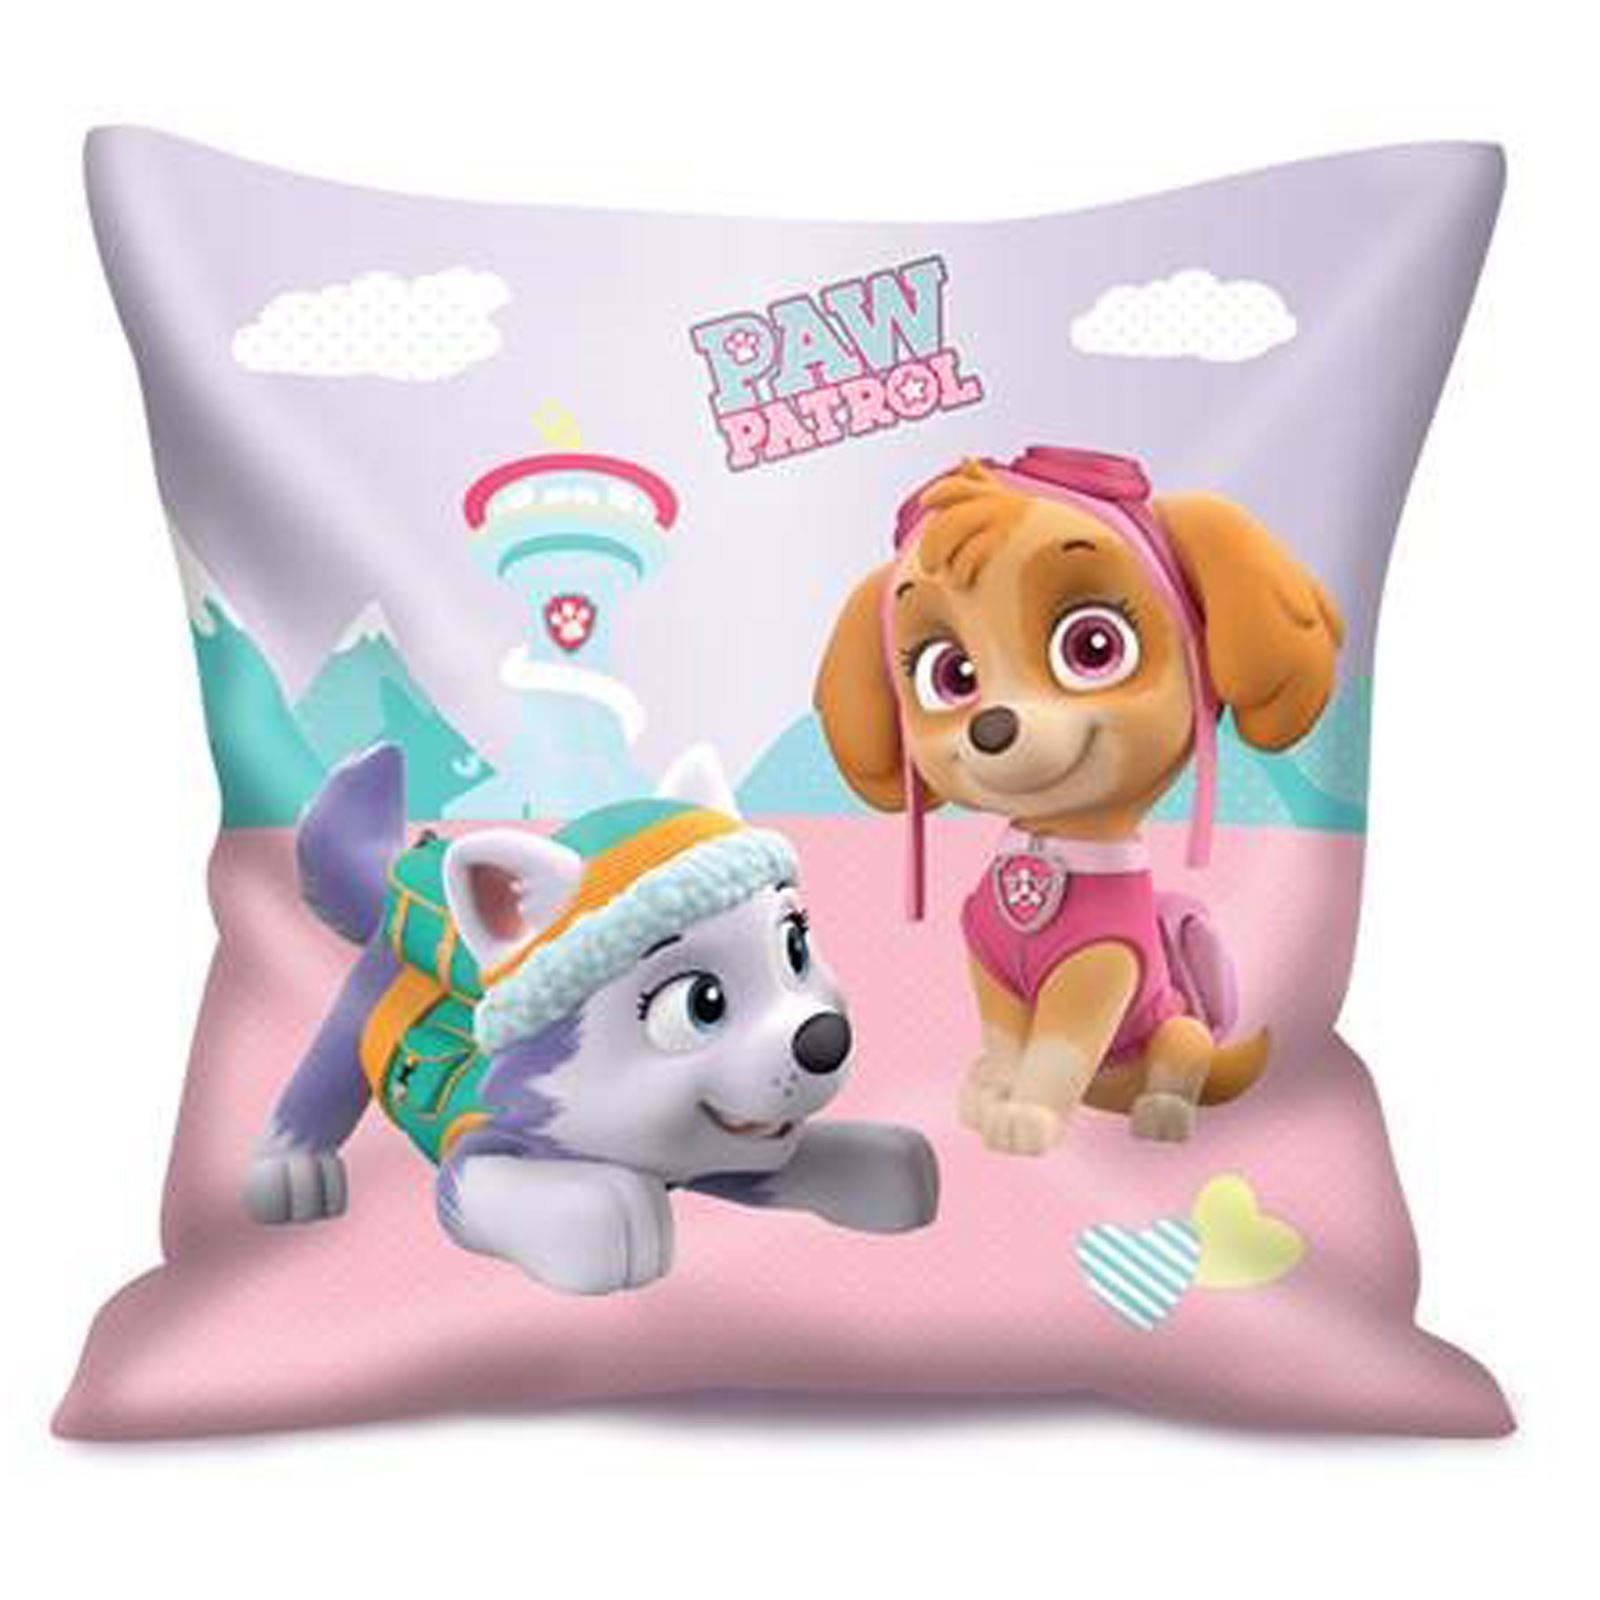 Home Decor Cushions PAW PATROL CHASE PRINT SHAPE PILLOW CUSHION SOFT BLUE KIDS BOYS CHILDRENS NEW .